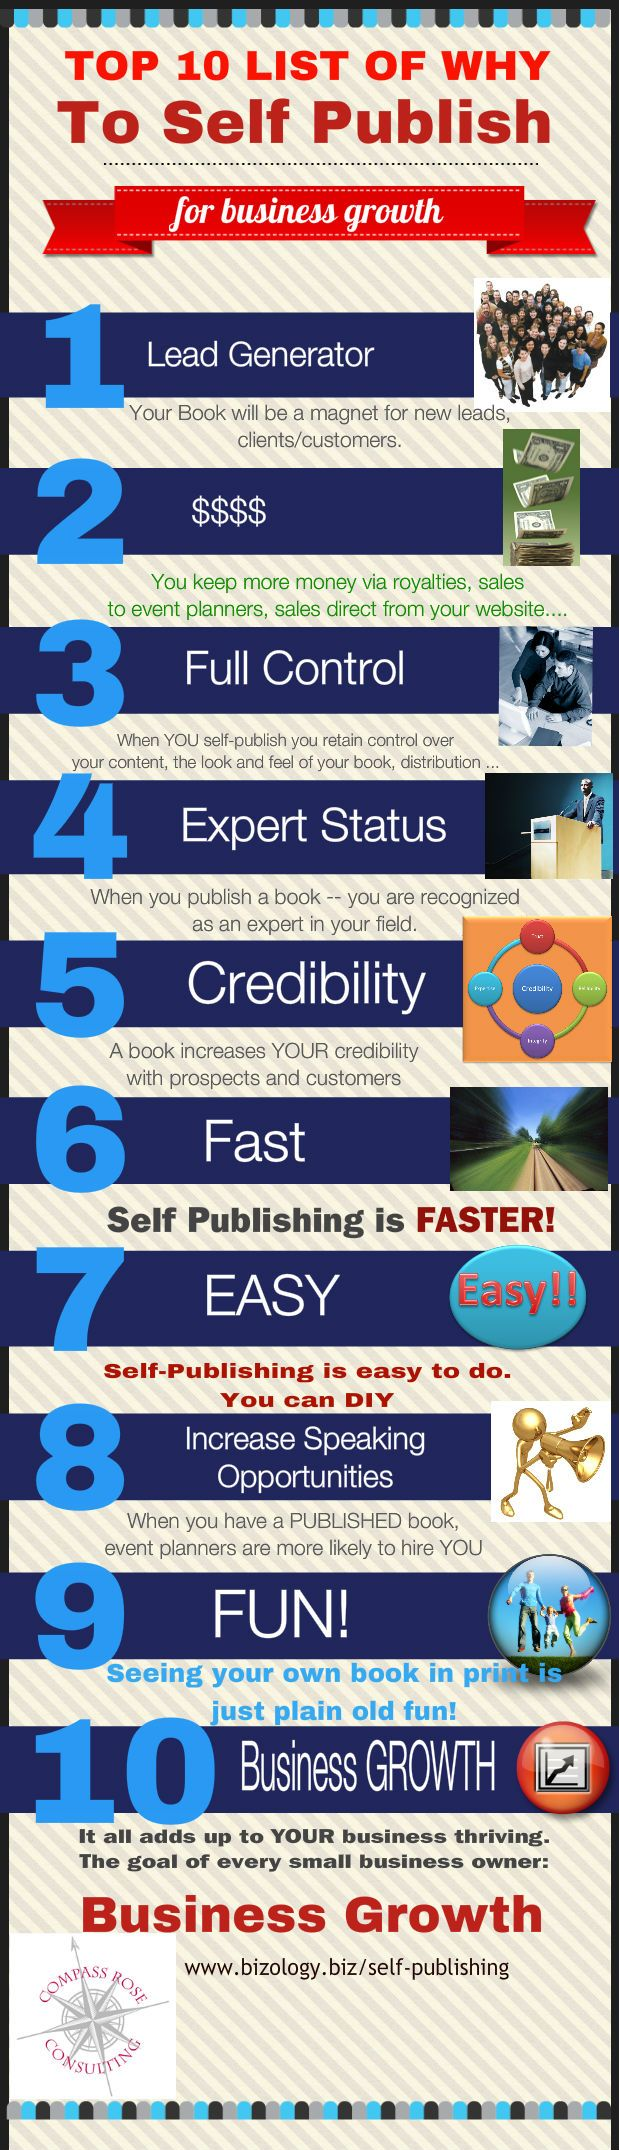 Top 10 Self-Pub Business